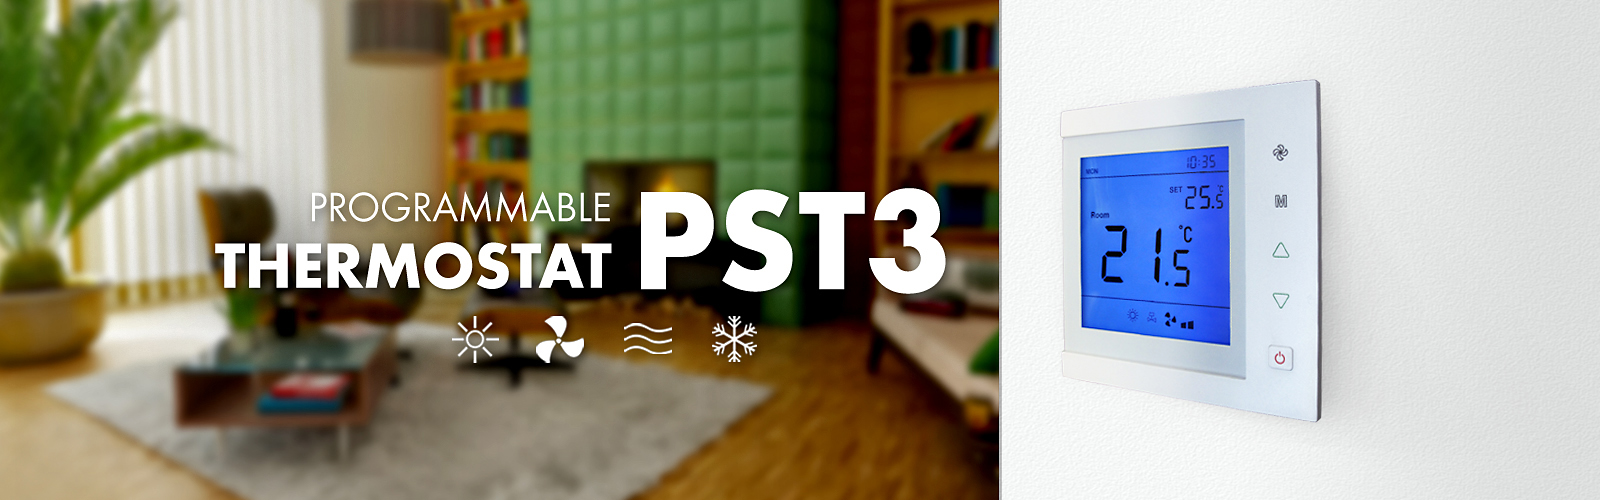 PST3 - programmable thermostat